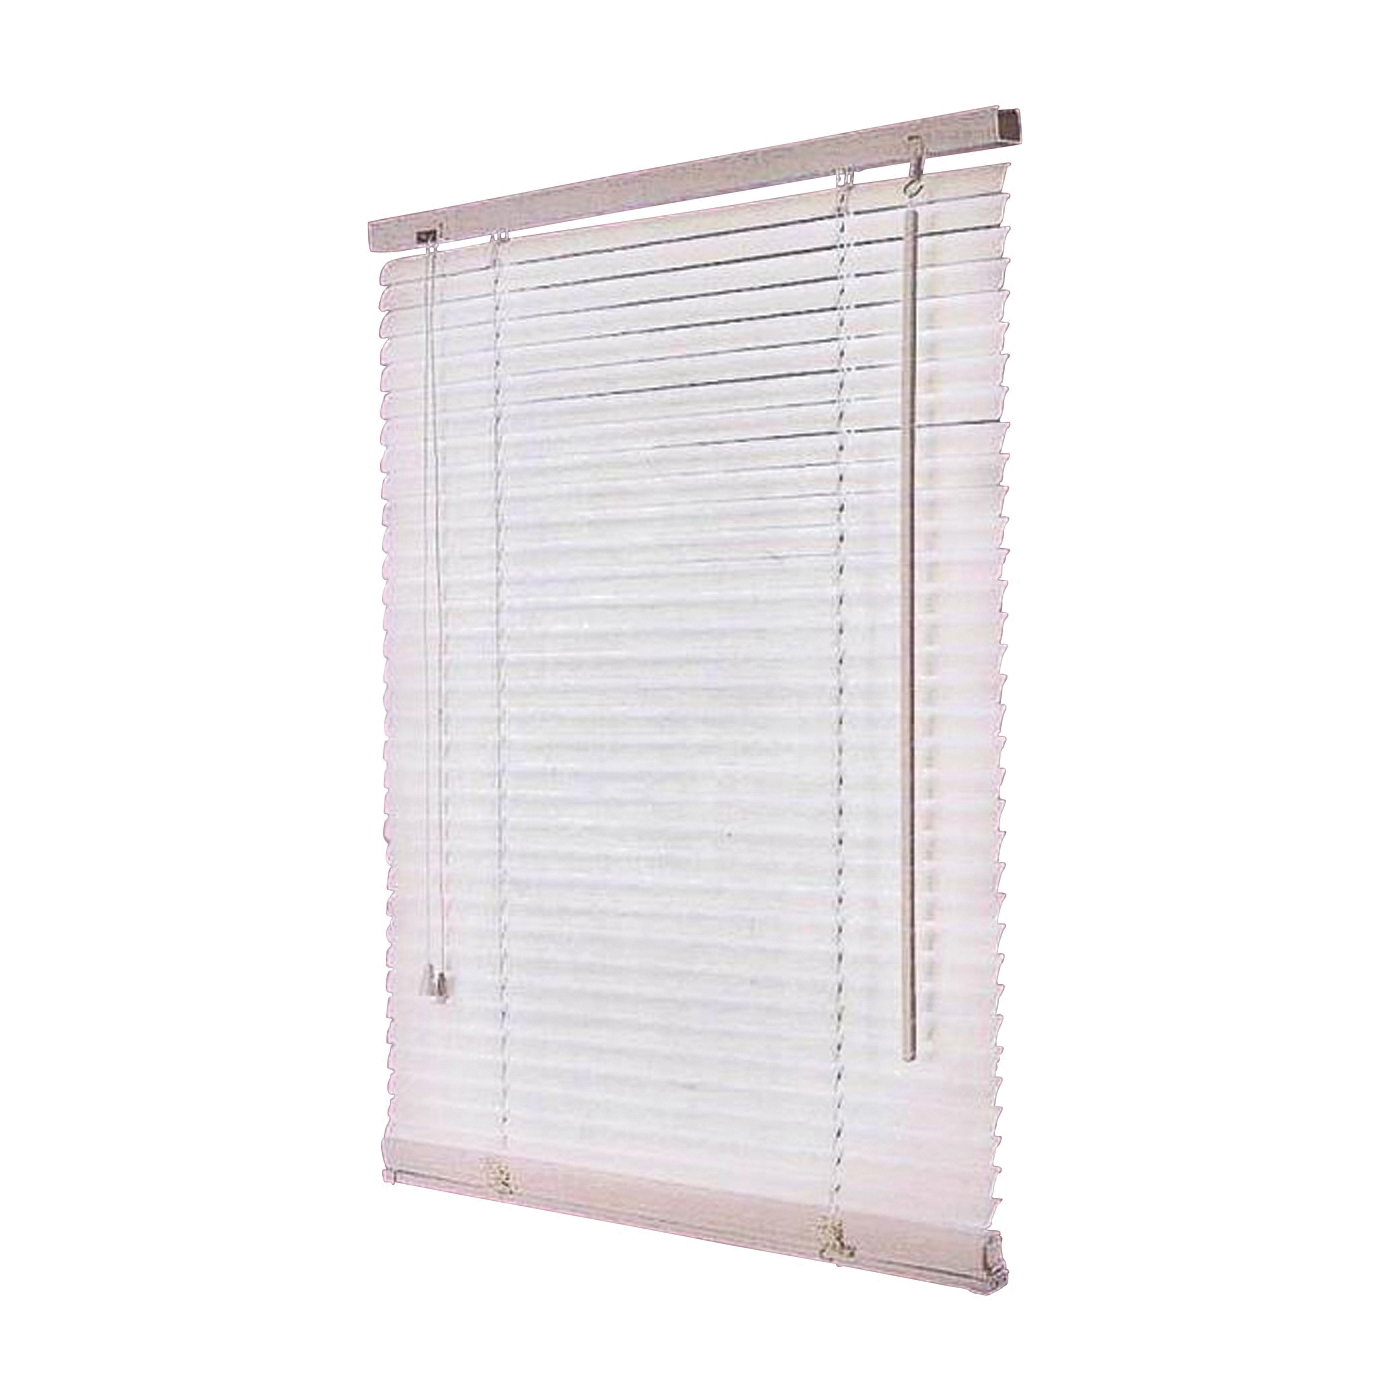 Picture of Simple Spaces FWB-23X72-3L Window Blinds, 72 in L, 23 in W, Faux Wood, White